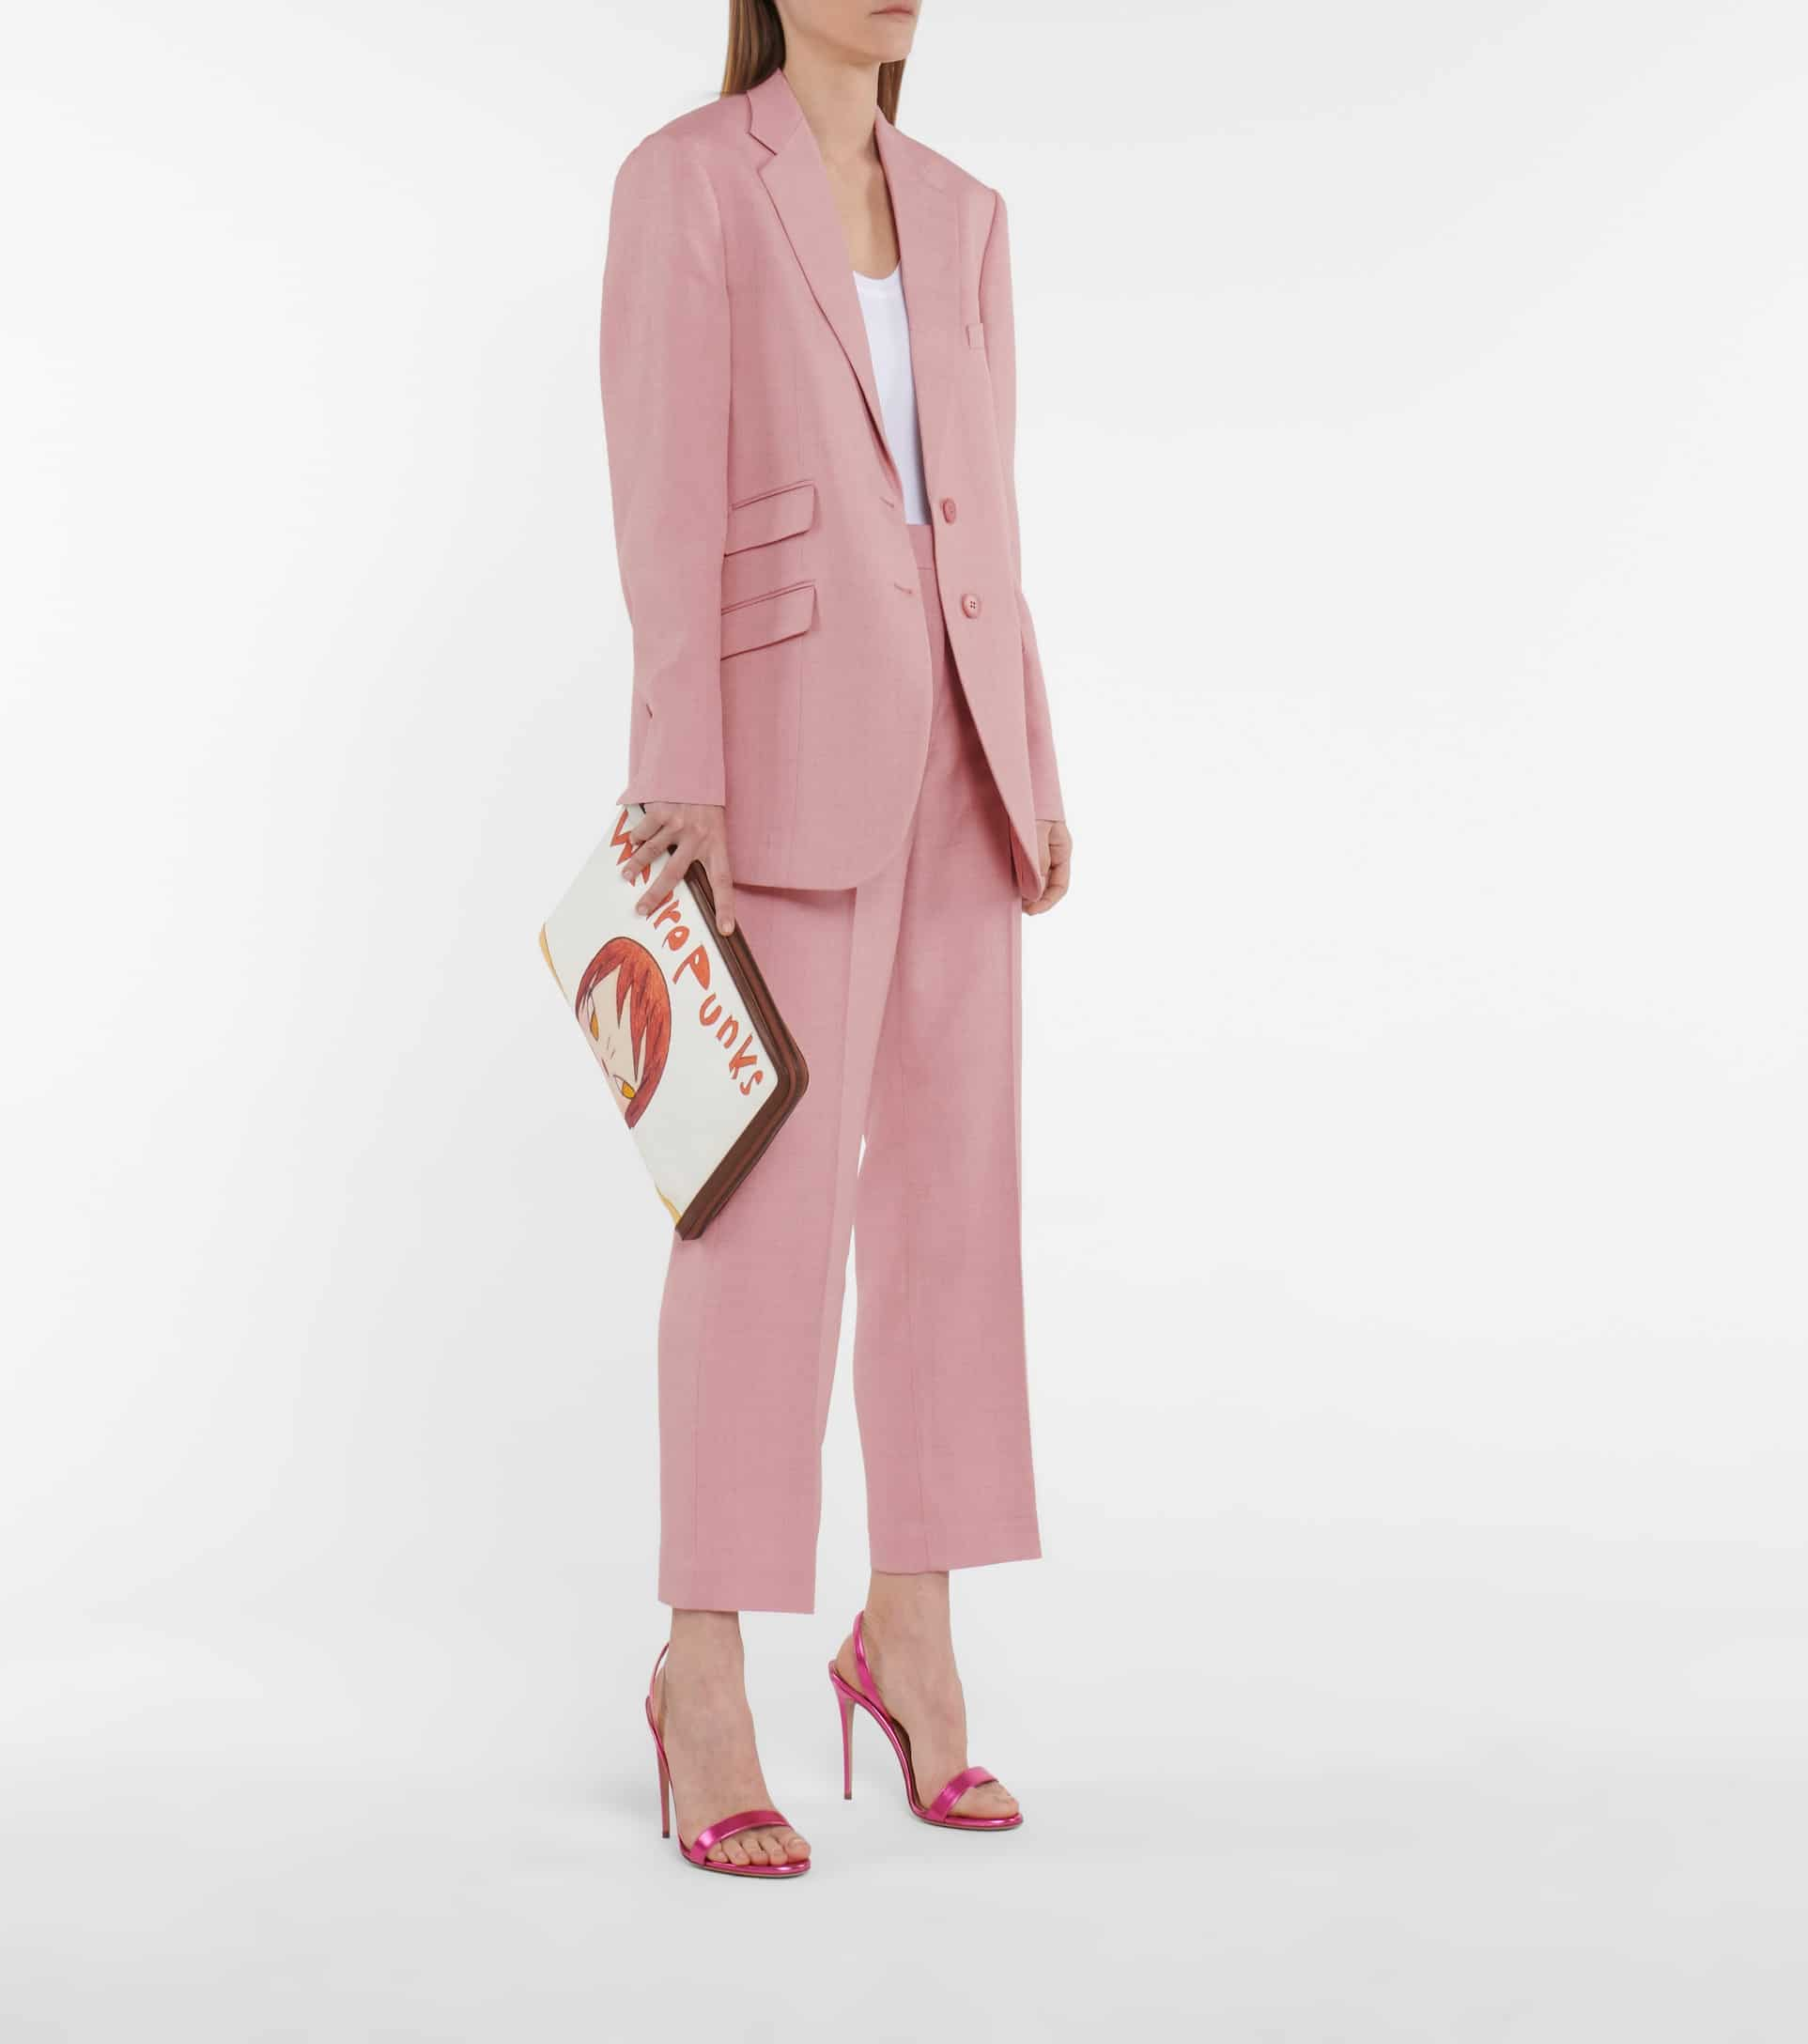 Girl in light pink suit